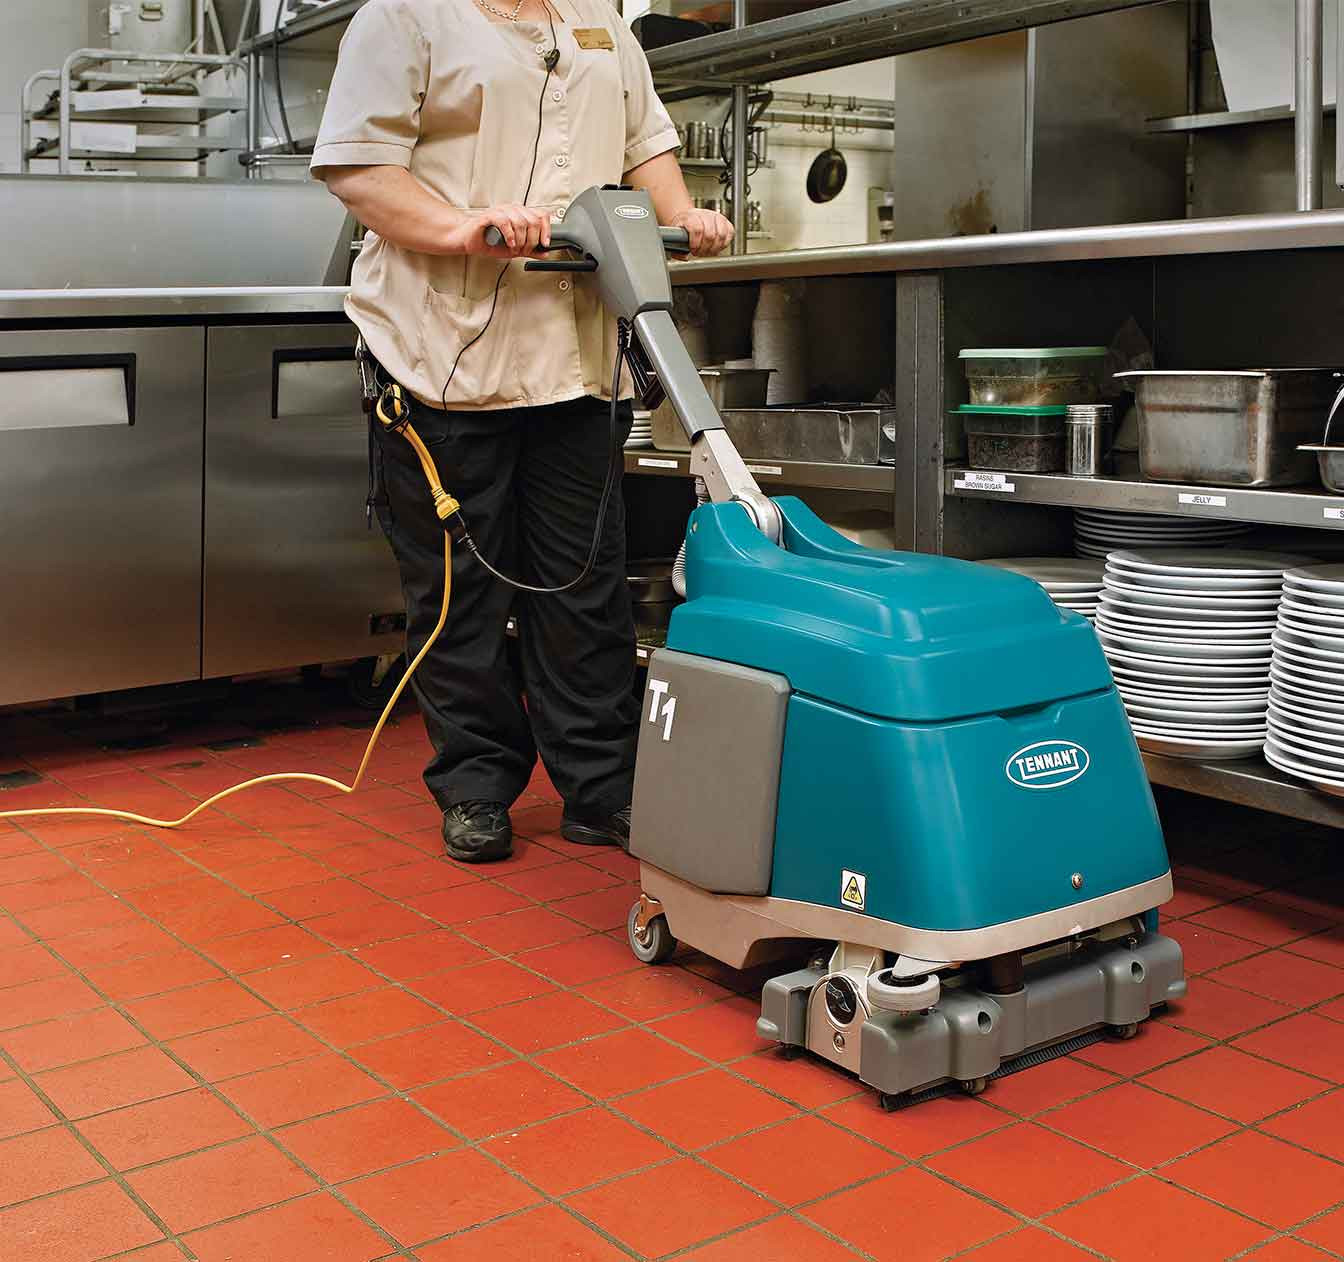 Hardwood Floor Cleaner Machine Of T1 Walk Behind Micro Scrubber Tennant Company with Regard to Maintain Health Safety